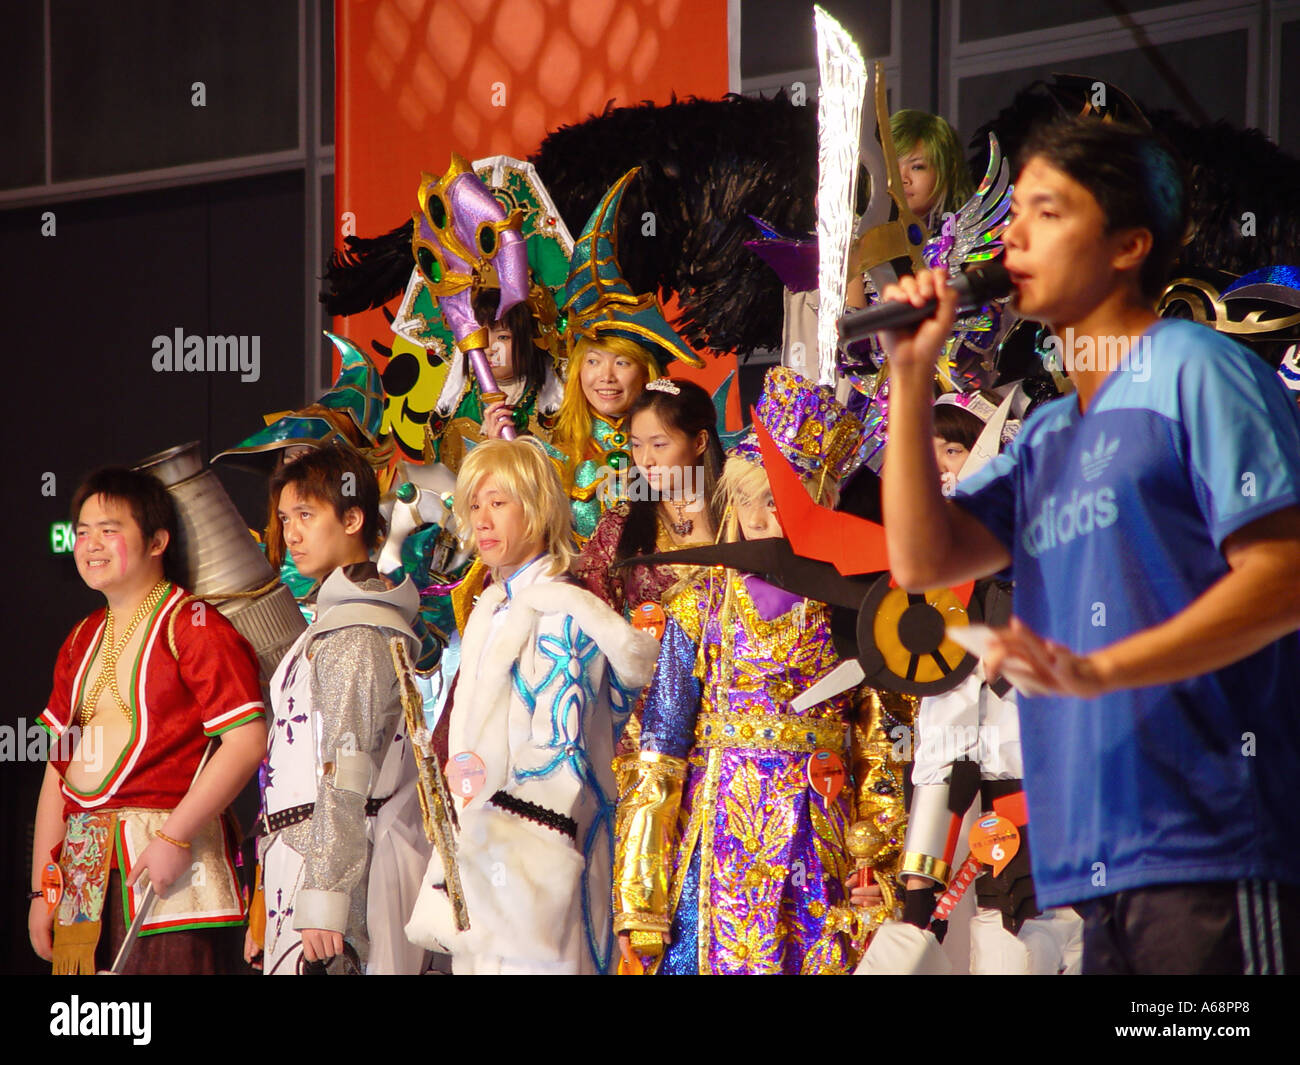 Large group of people dressed as comic book characters on stage at The Hong Kong Animax Convention 2004 - Stock Image